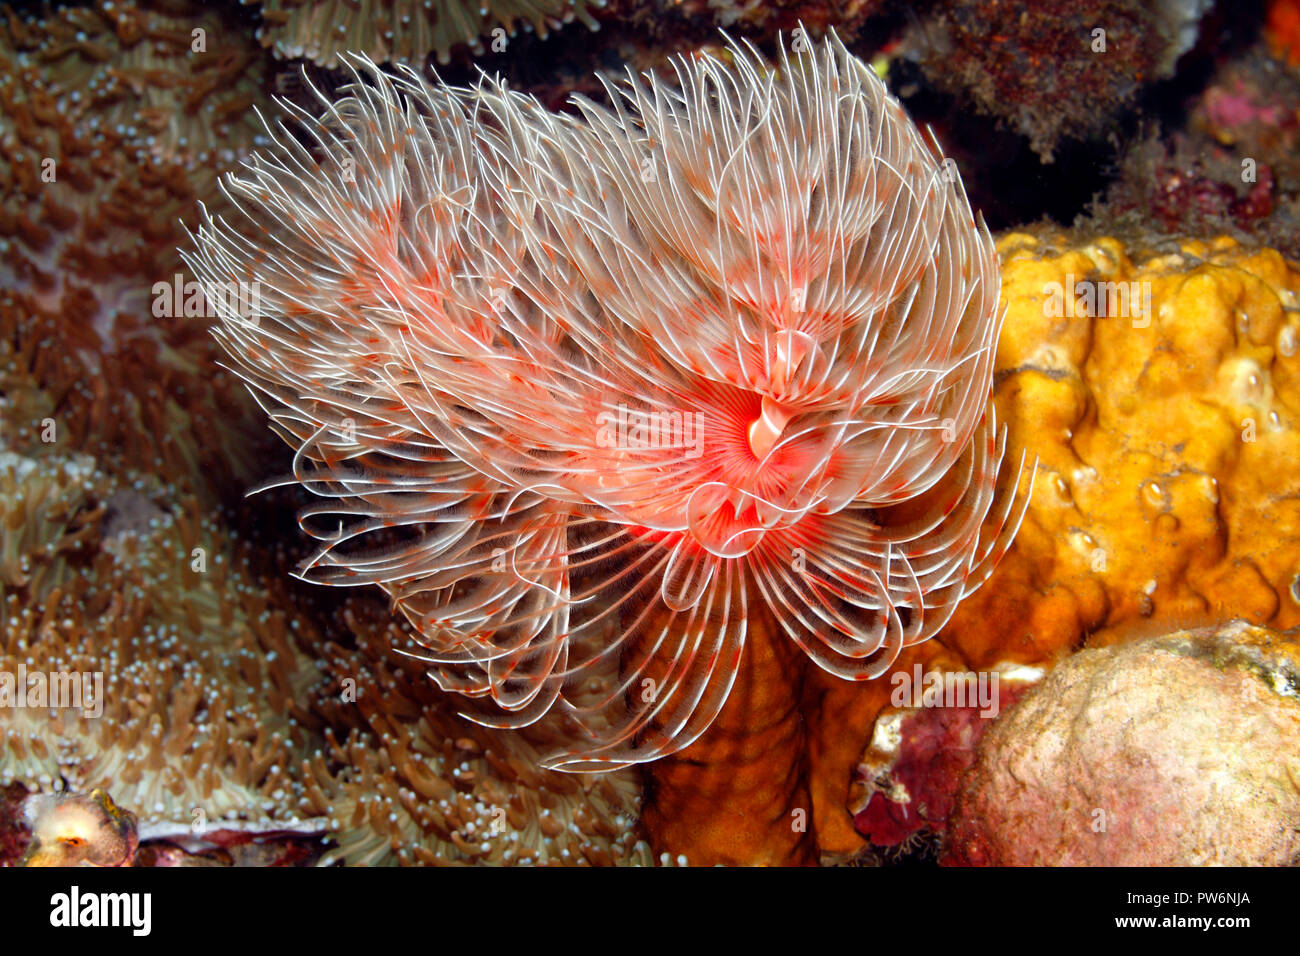 Magnificent Tube Worm, Protula bispiralis, previously Protula magnifica.Tulamben, Bali, Indonesia. Bali Sea, Indian Ocean Stock Photo